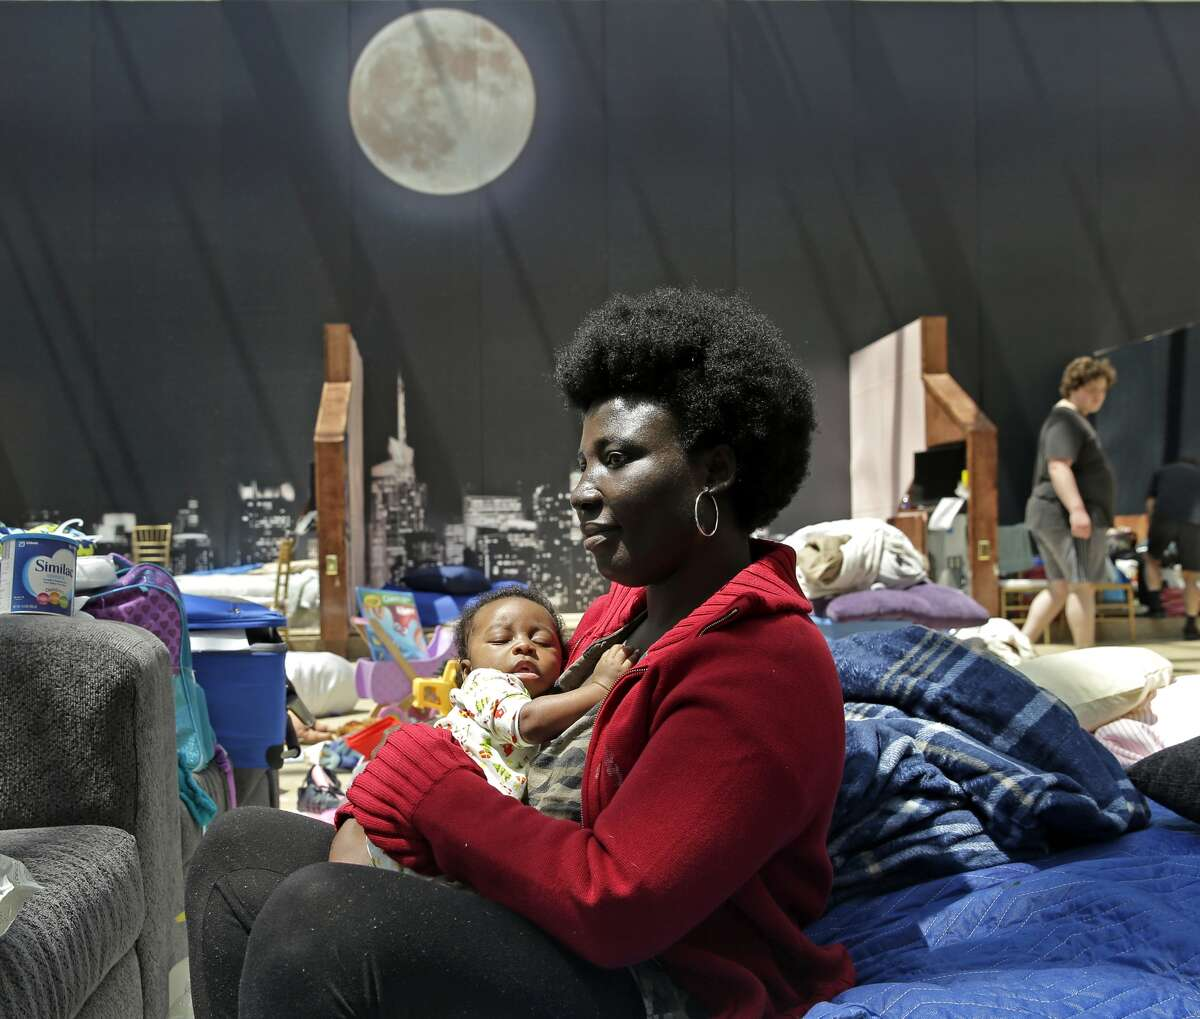 Gladys Dasi holds her two-month-old son Elliott while sheltering at Gallery Furniture Wednesday, Aug. 30, 2017, in Richmond, Texas. Dasi with her husband and four kids evacuated their Richmond home Sunday after it flooded as a result of Hurricane Harvey. The furniture store opened as a shelter housing as many as 350 people in an area being constructed as a museum of American industry. (AP Photo/Charlie Riedel)